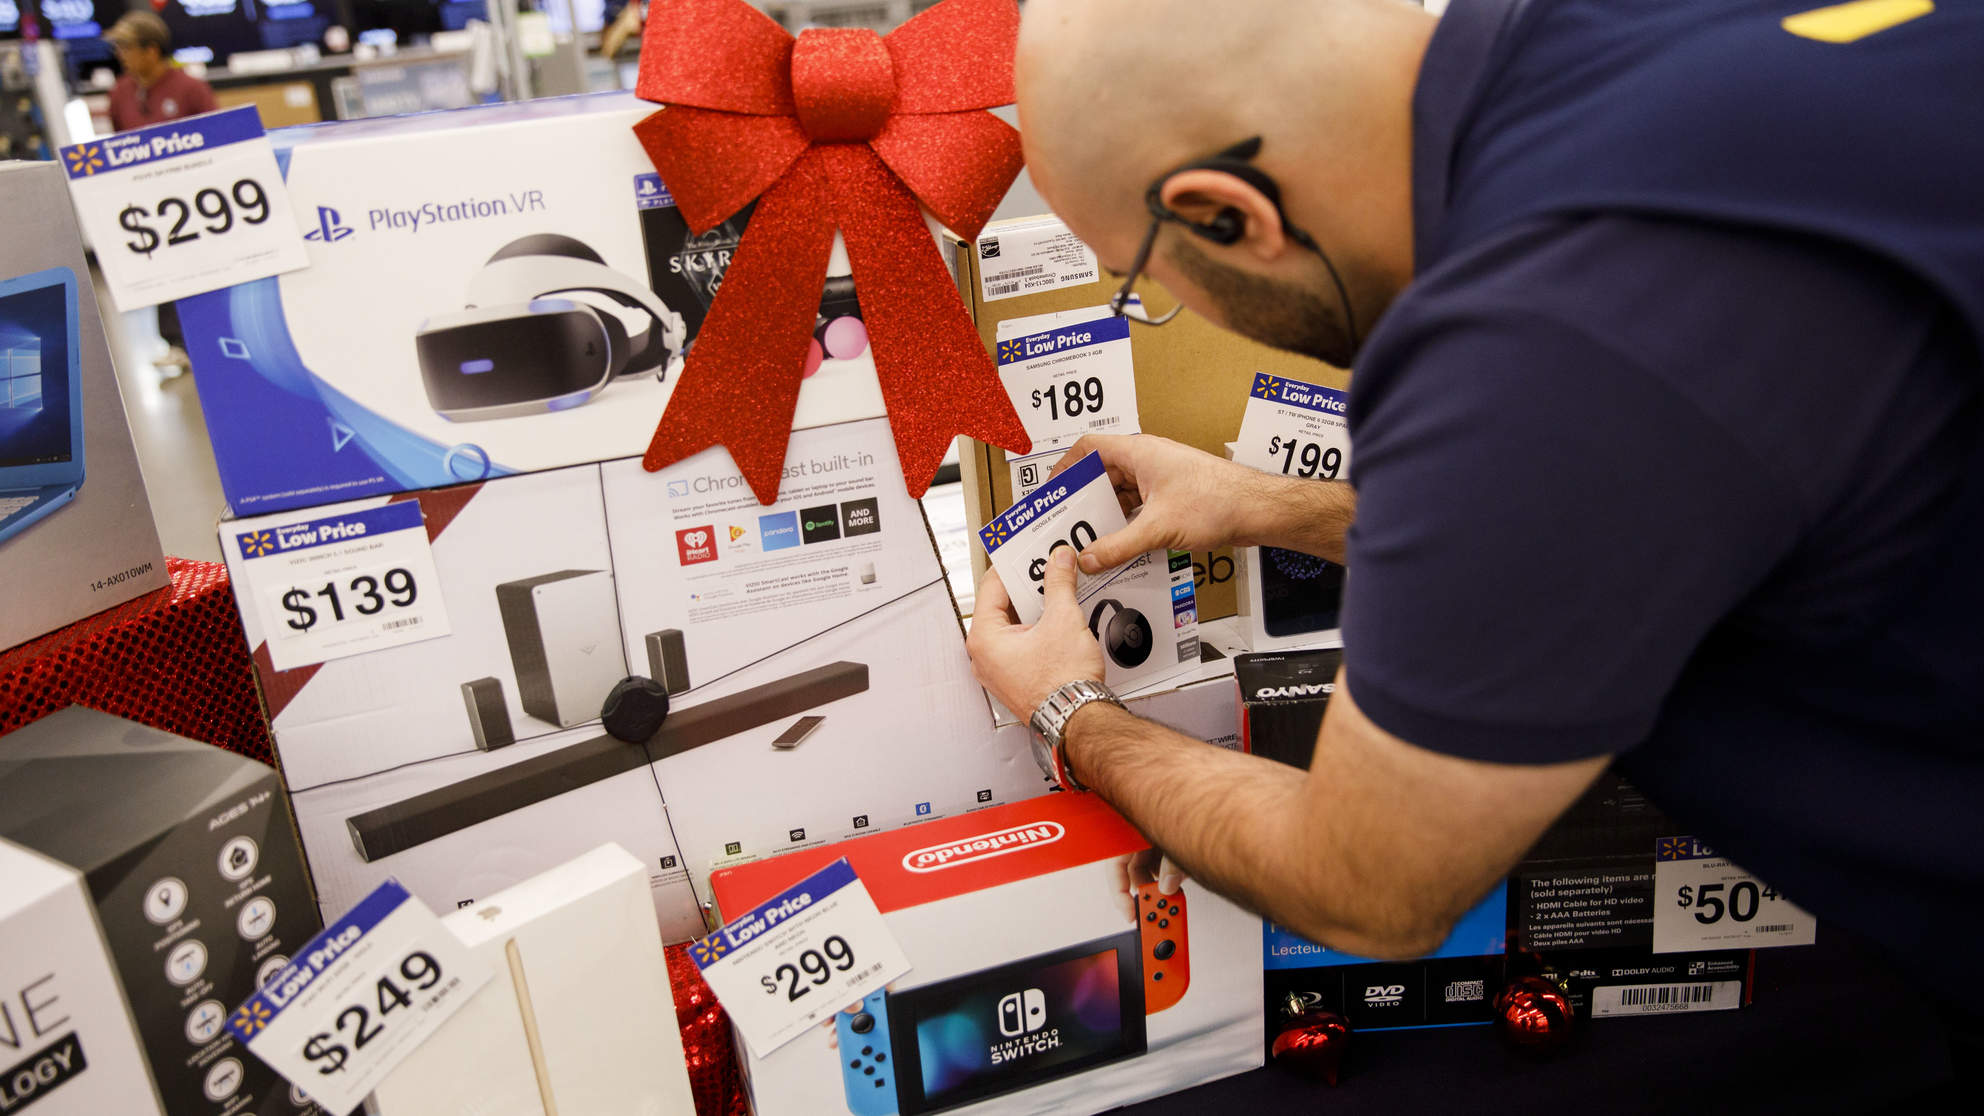 The Best Walmart Black Friday Deals We Know About So Far